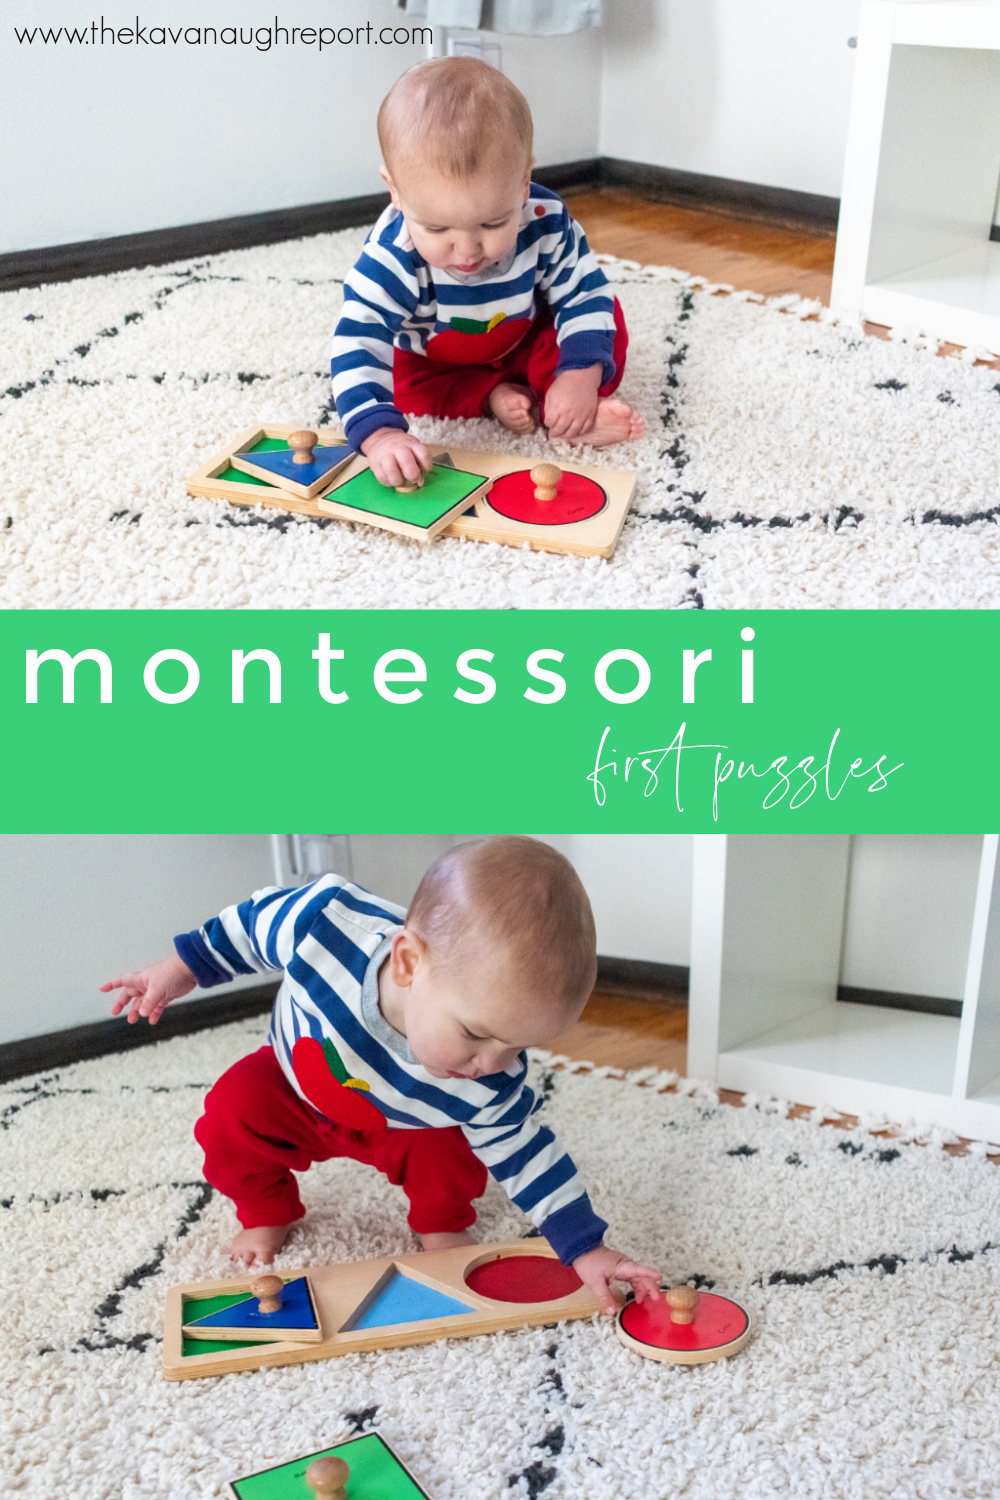 A look at the first puzzles to introduce to Montessori babies and toddlers. These simple, fun options are perfect to support a child's development.